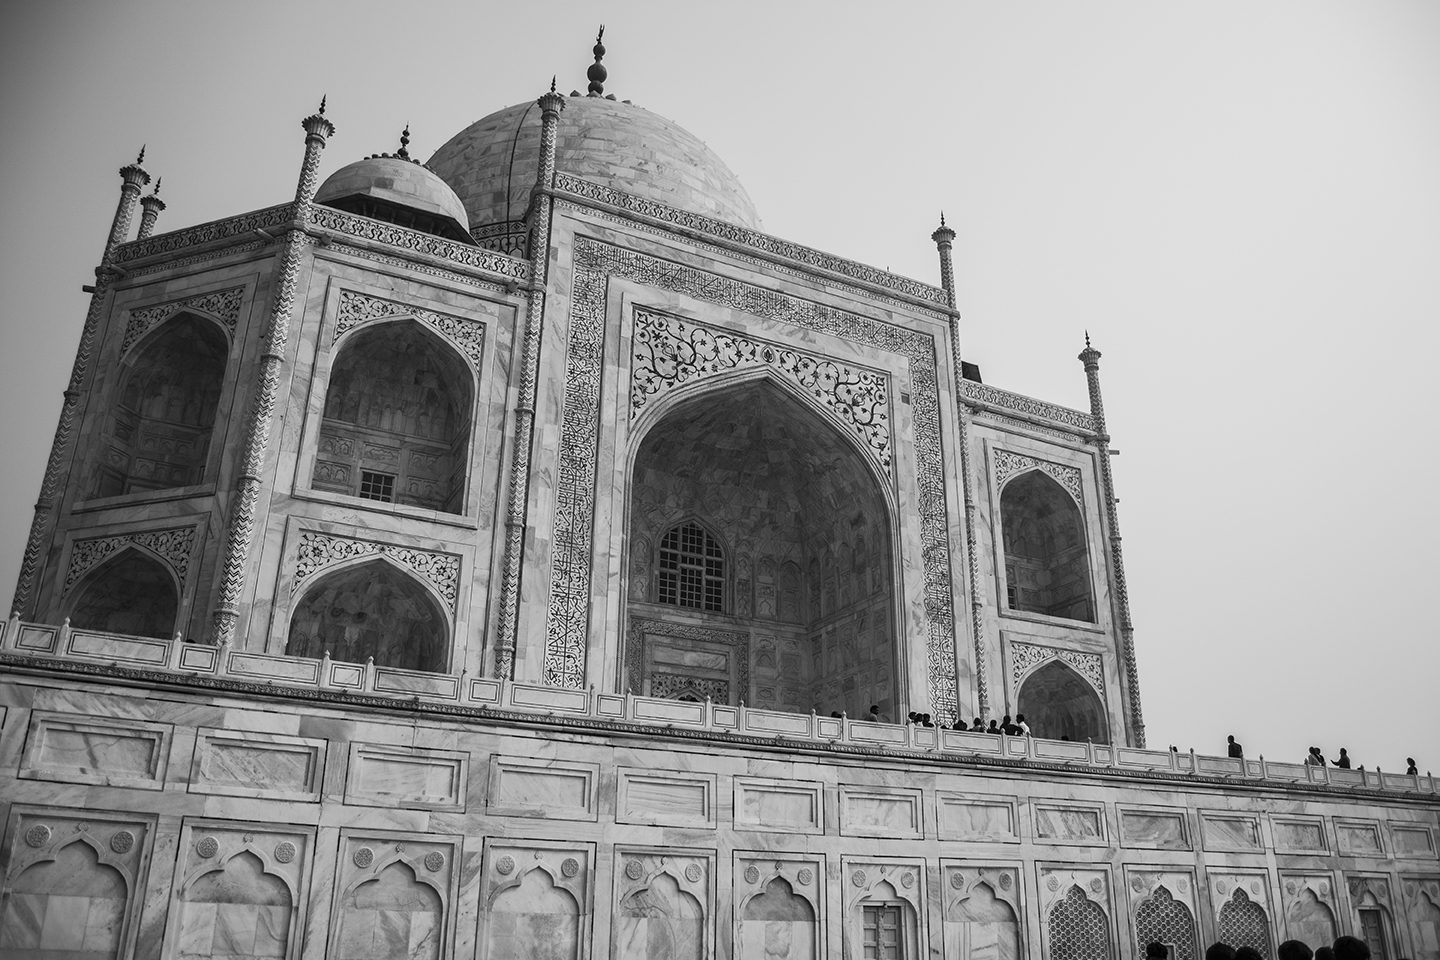 Taj Mahal: A tomb for love